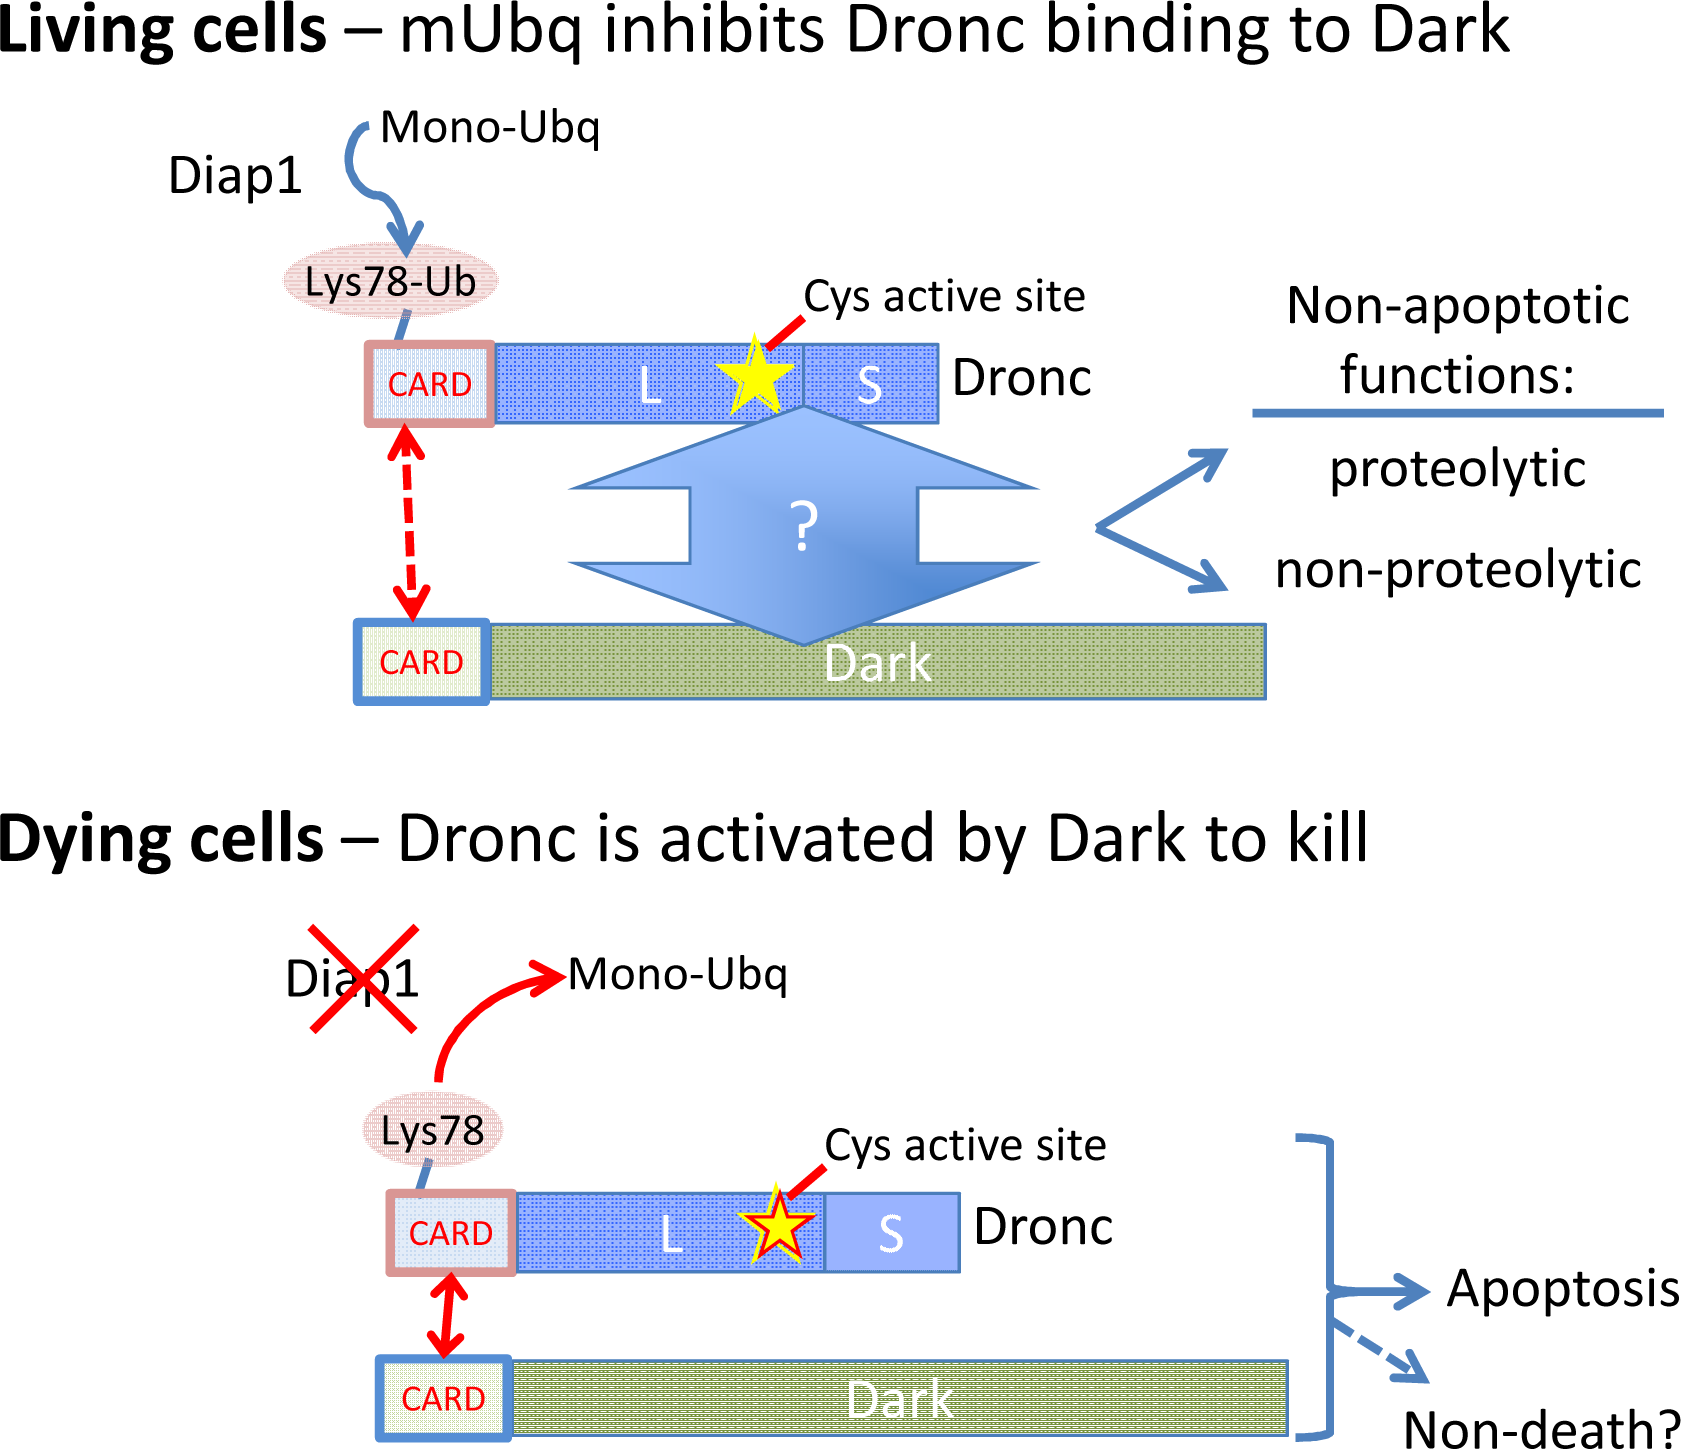 The caspase Dronc functions in both living and dying cells.